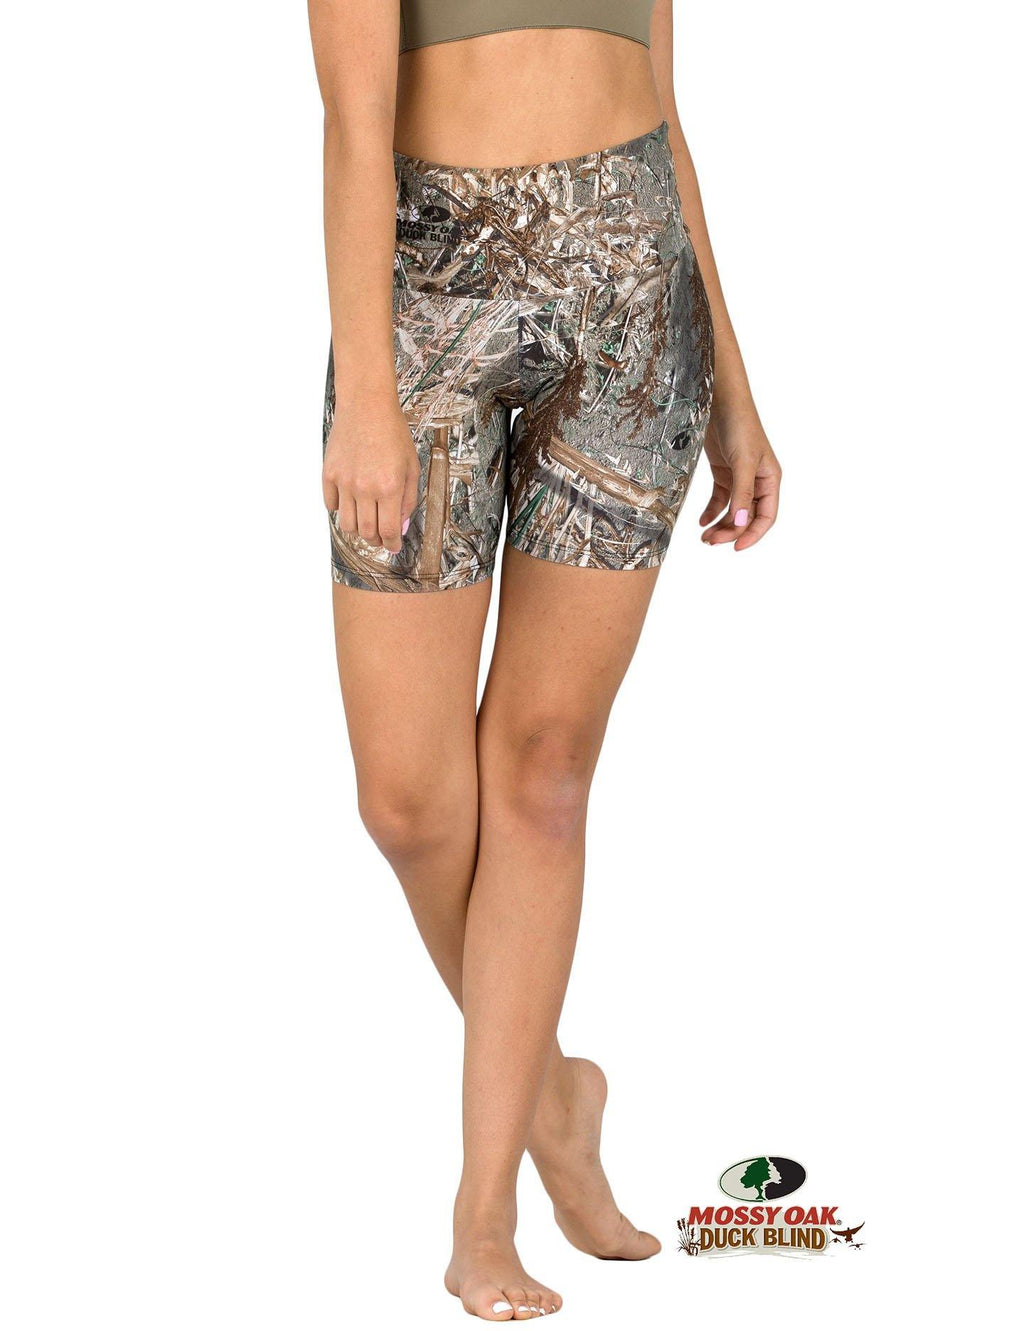 Apsara Shorts High Waist, Mossy Oak Duck Blind